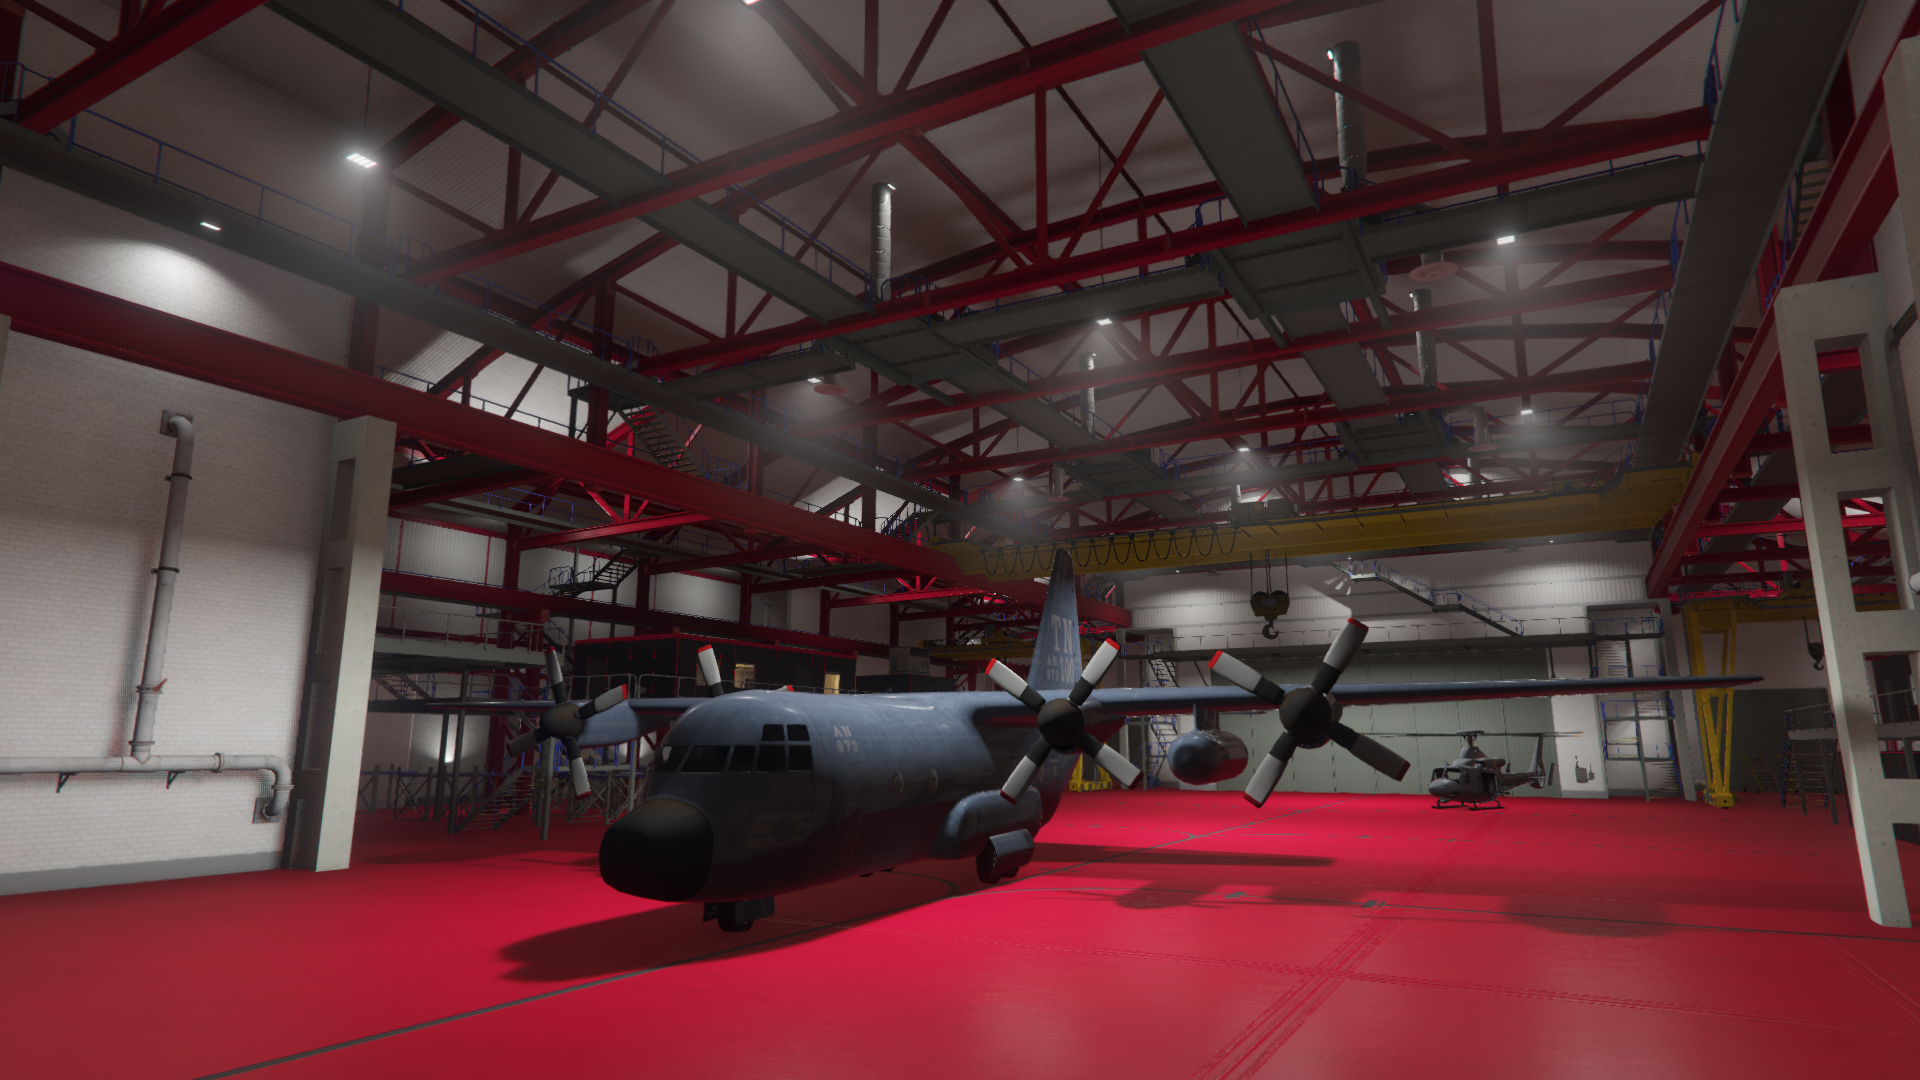 Hangars | GTA Wiki | FANDOM powered by Wikia